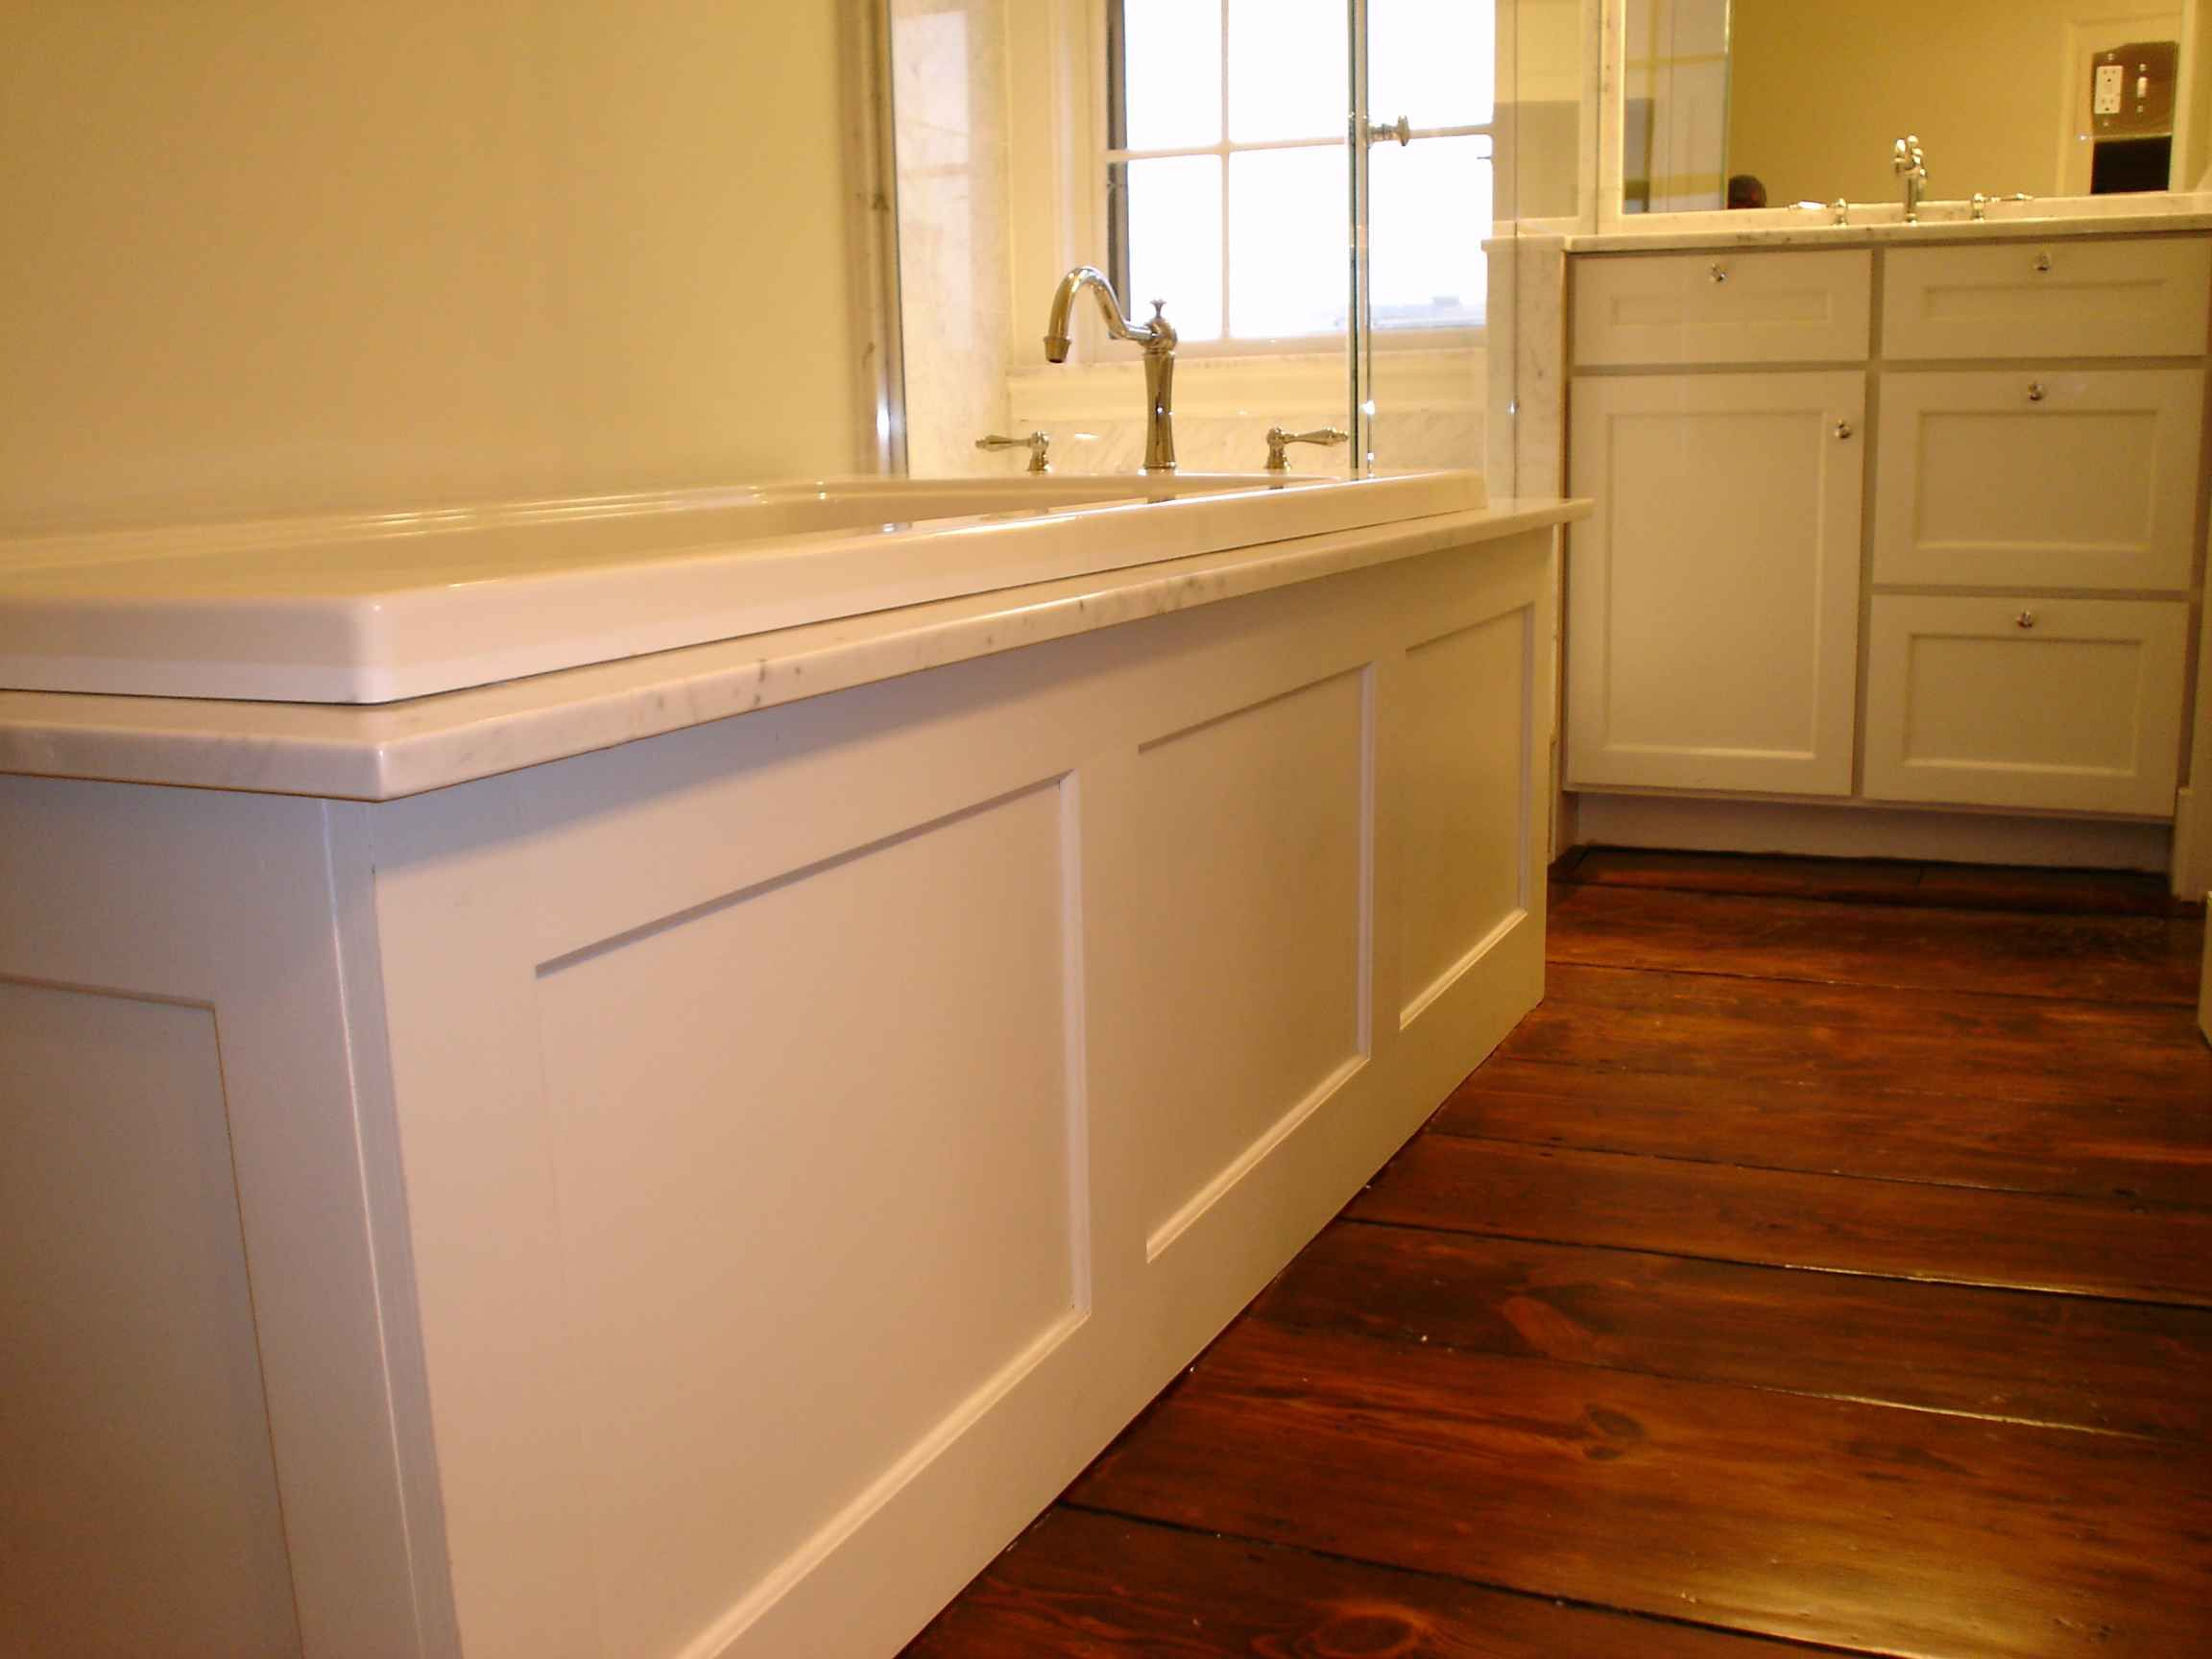 Private residence in british colonial style traditional bathroom - Wood Tub Surround Paint Or Stain To Match Vanity